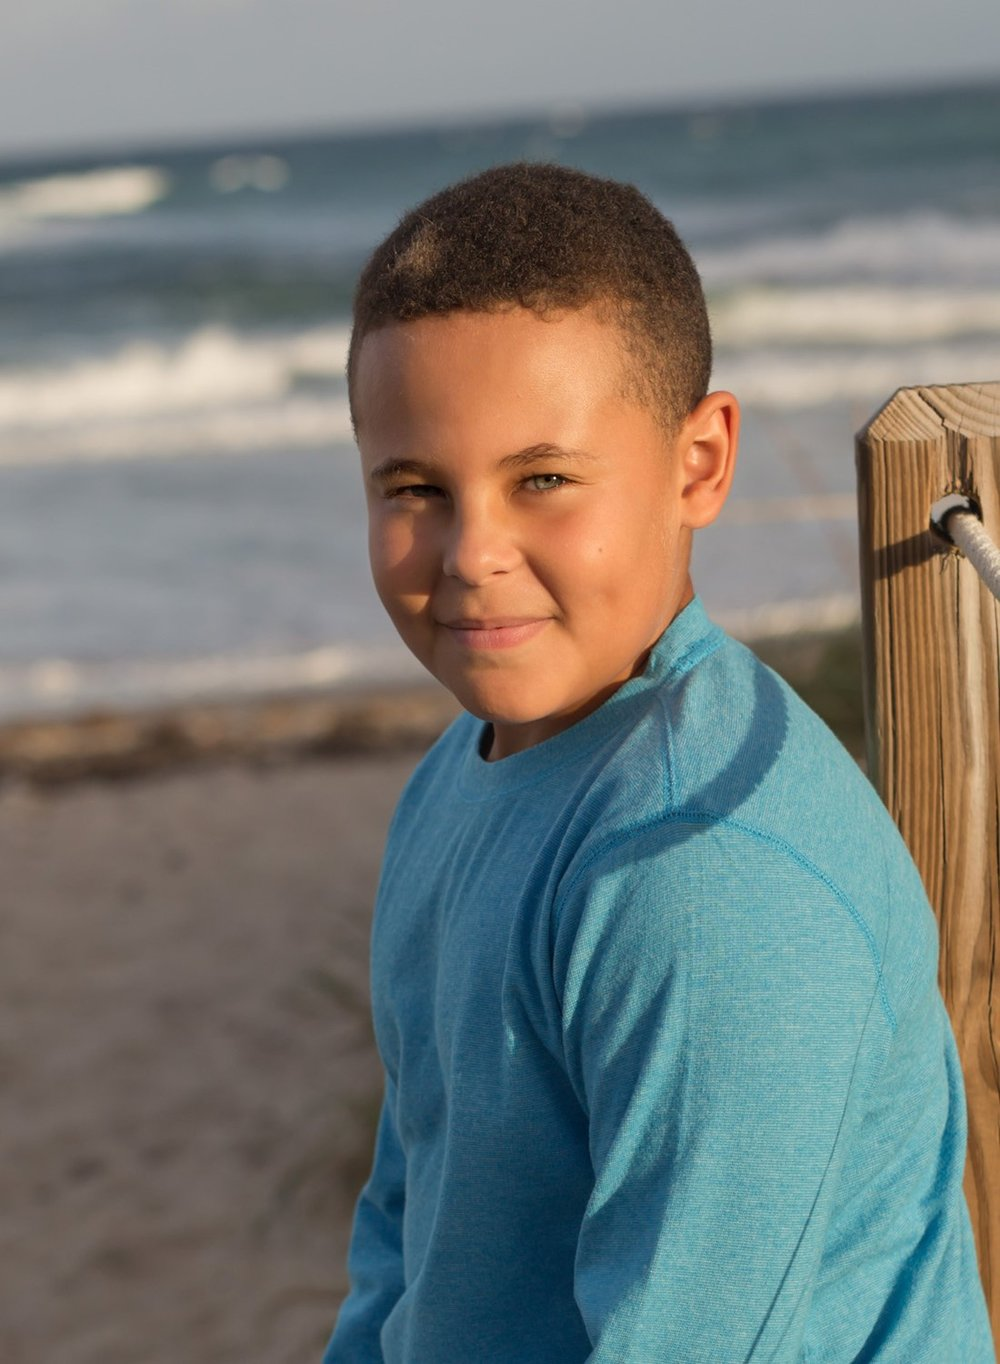 alissa-delucca-photography-boca-raton-photographer-sibling-session-handsome-head-shot.jpg